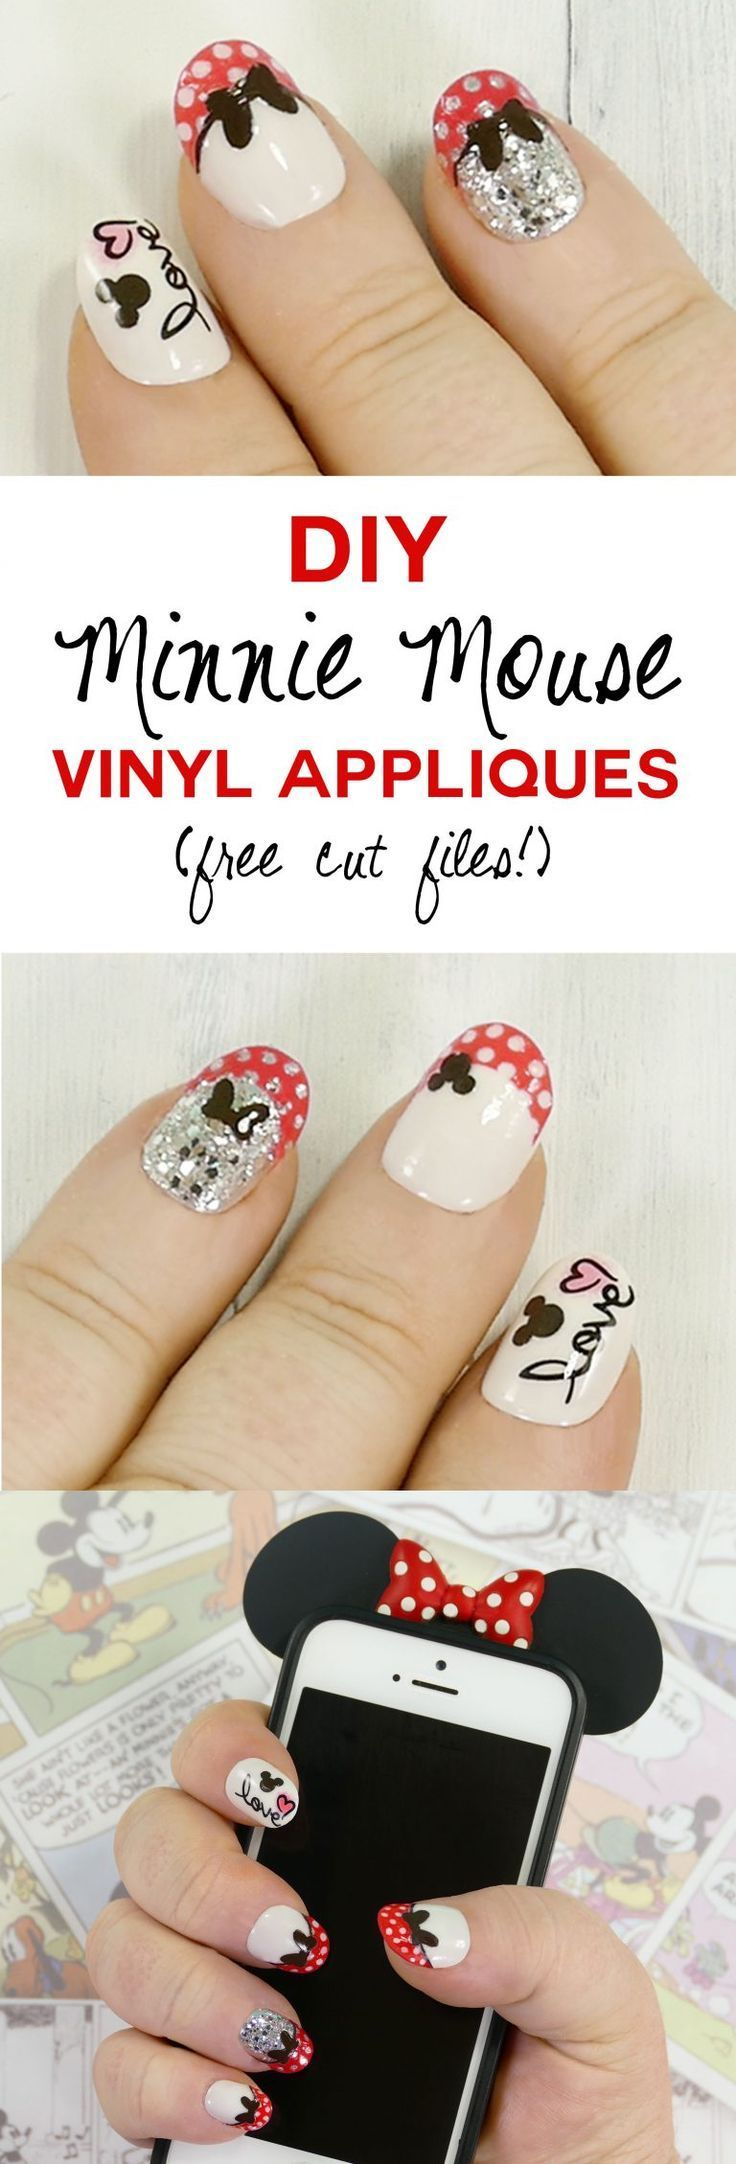 Diy minnie mouse nail tips vinyl appliques made on the